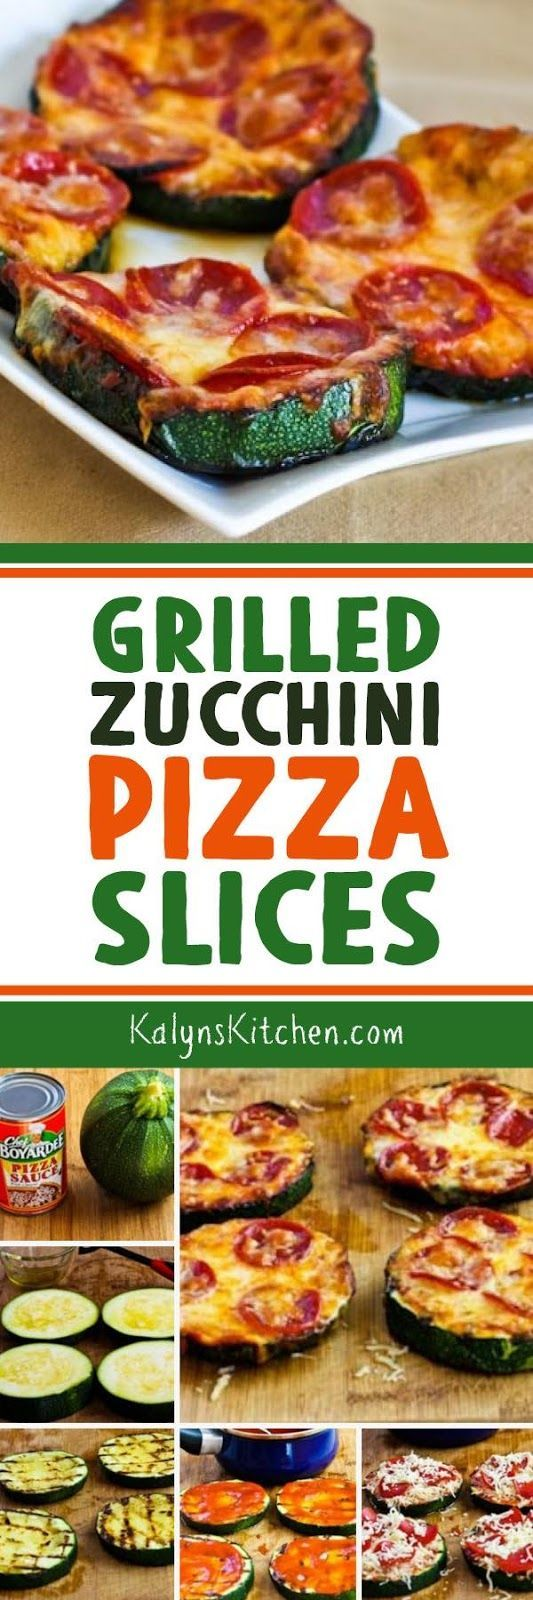 Grilled Zucchini Pizza Slices from KalynsKitchen.com.  Try just broiling them in the oven at 450-500.